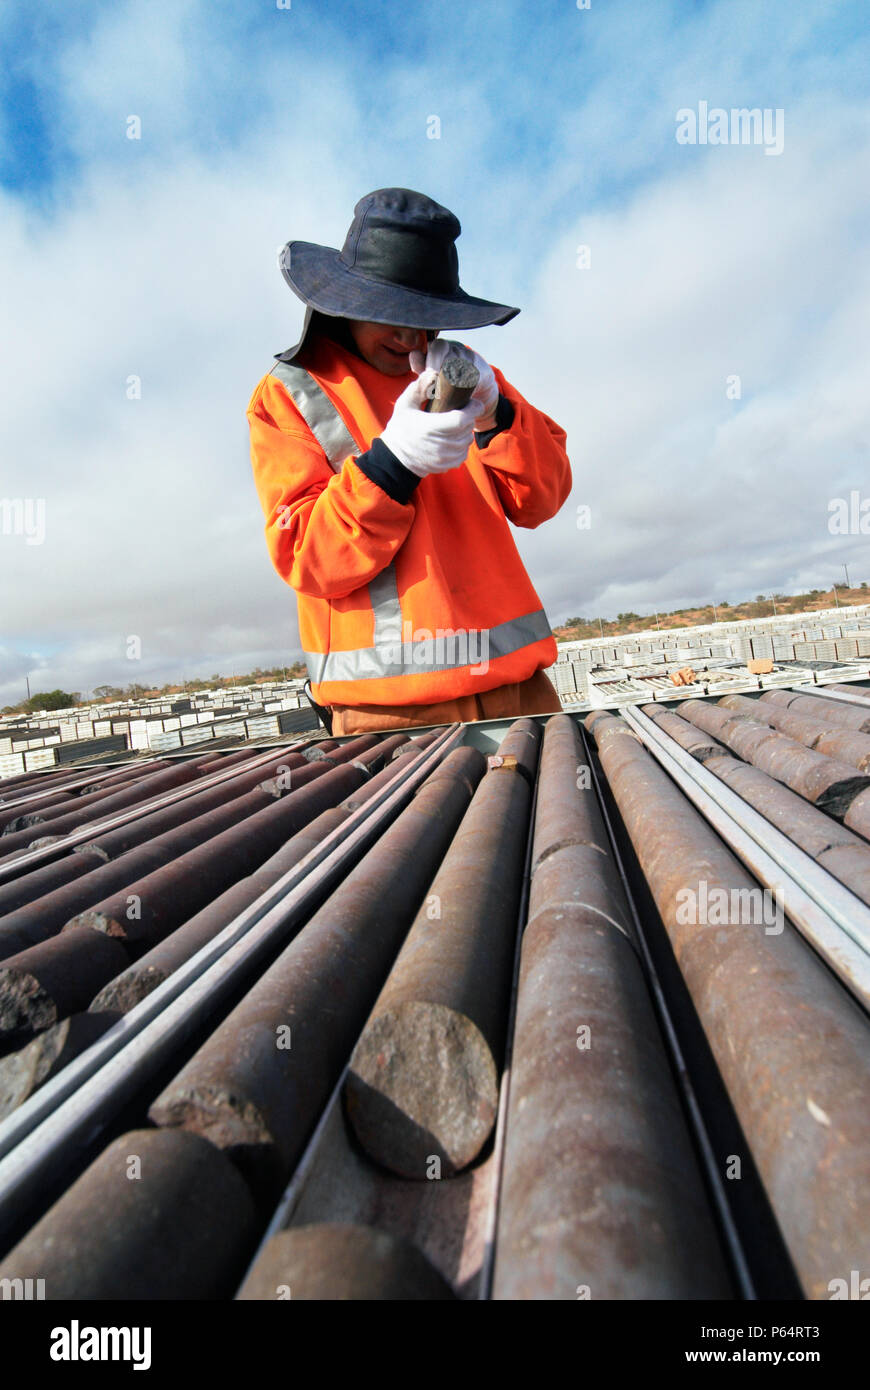 Geologist examines core sample from boreholes at uranium mine in Australia - Stock Image